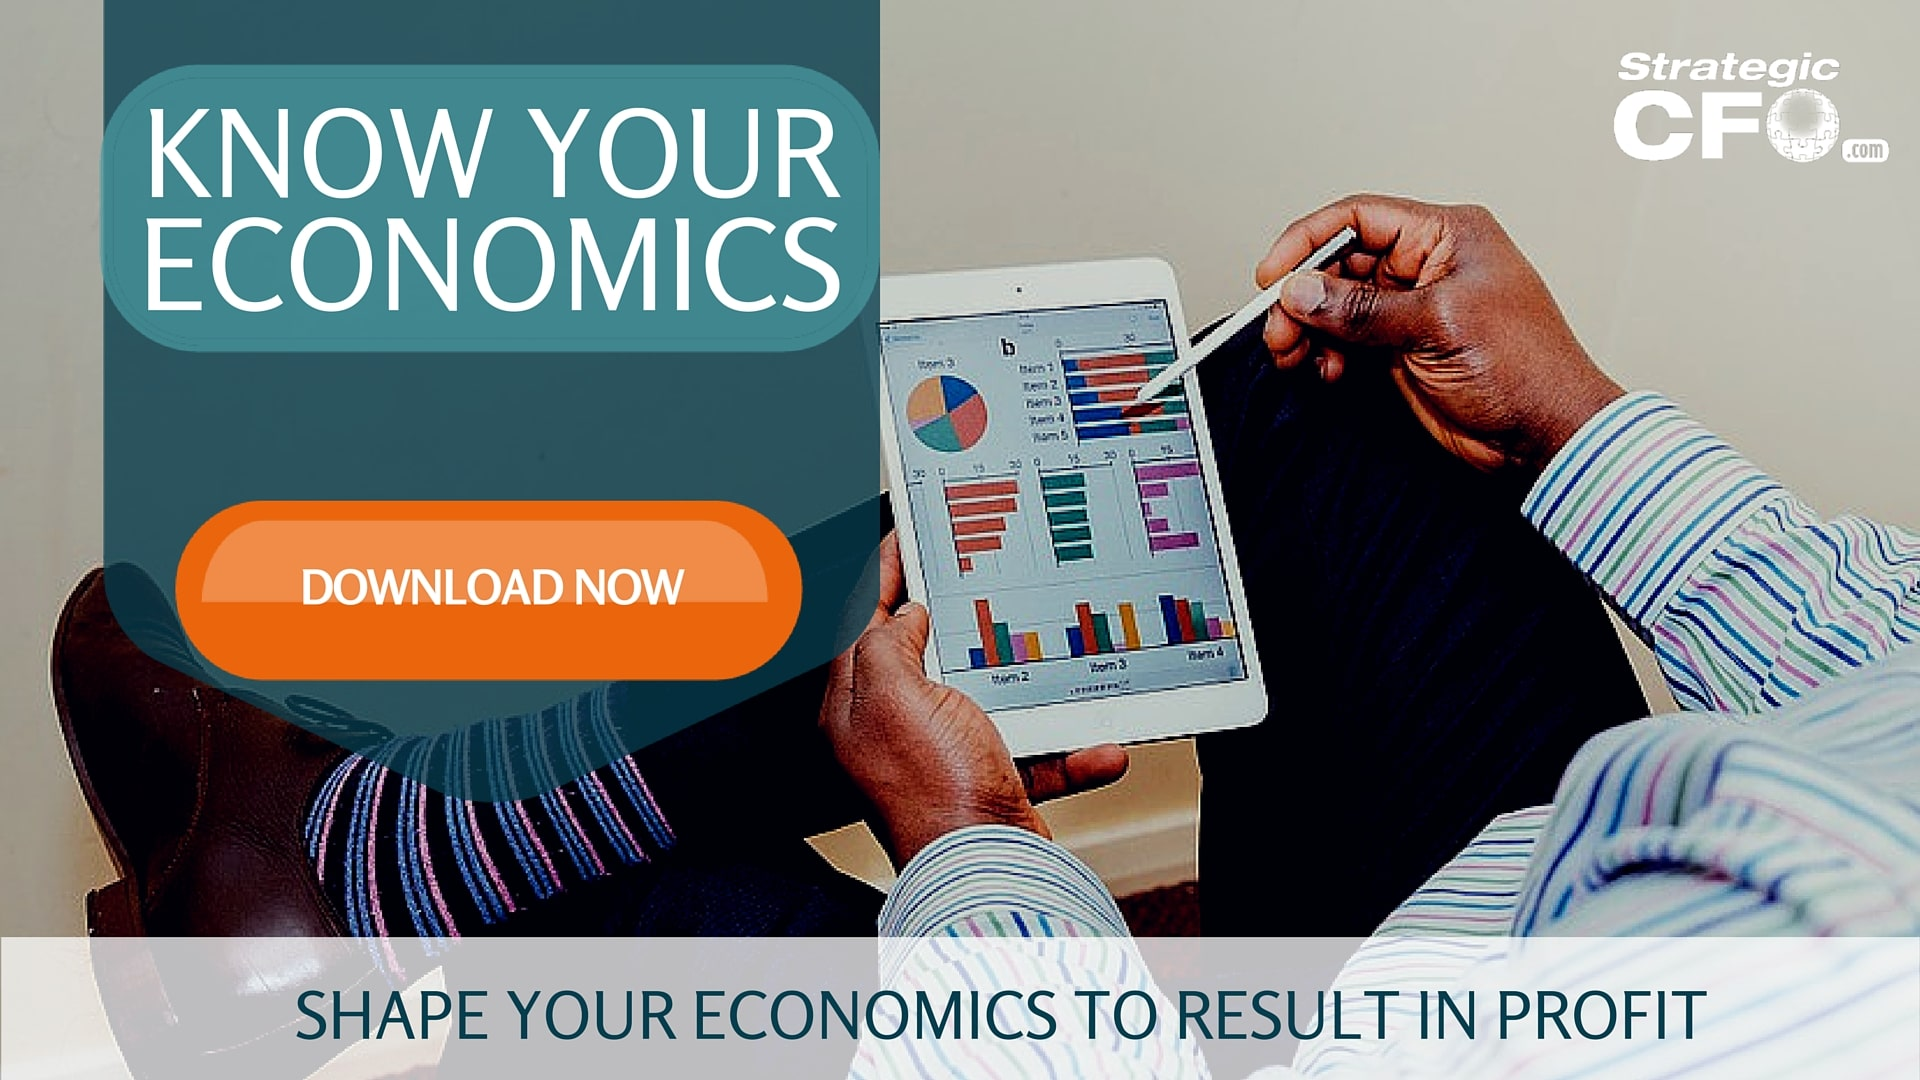 knowing your economics, Discipline of the Financial Leader